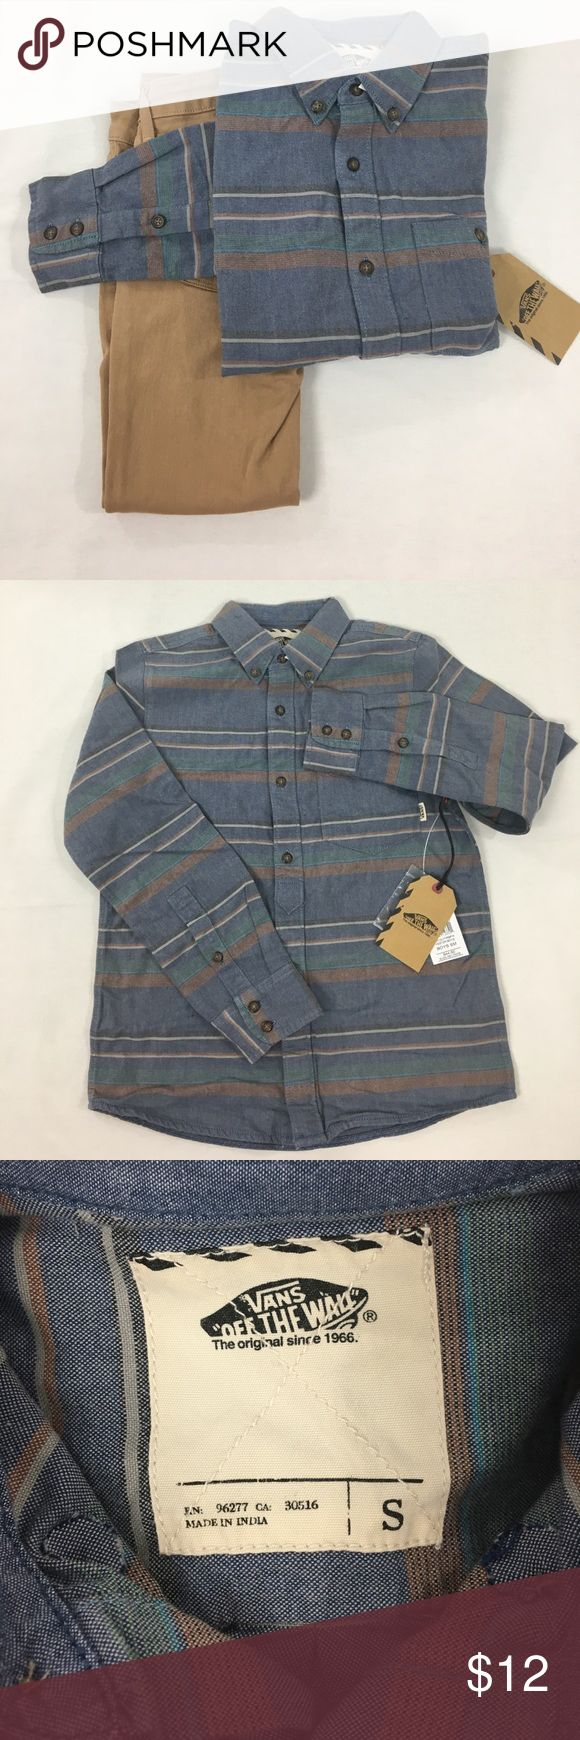 Boys Vans button down shirt Boys Vans button down shirt. Size S, made from 100% cotton. Brand new, no damages. Colors featured are blue, green, orange, gray, and black. Vans Shirts & Tops Button Down Shirts